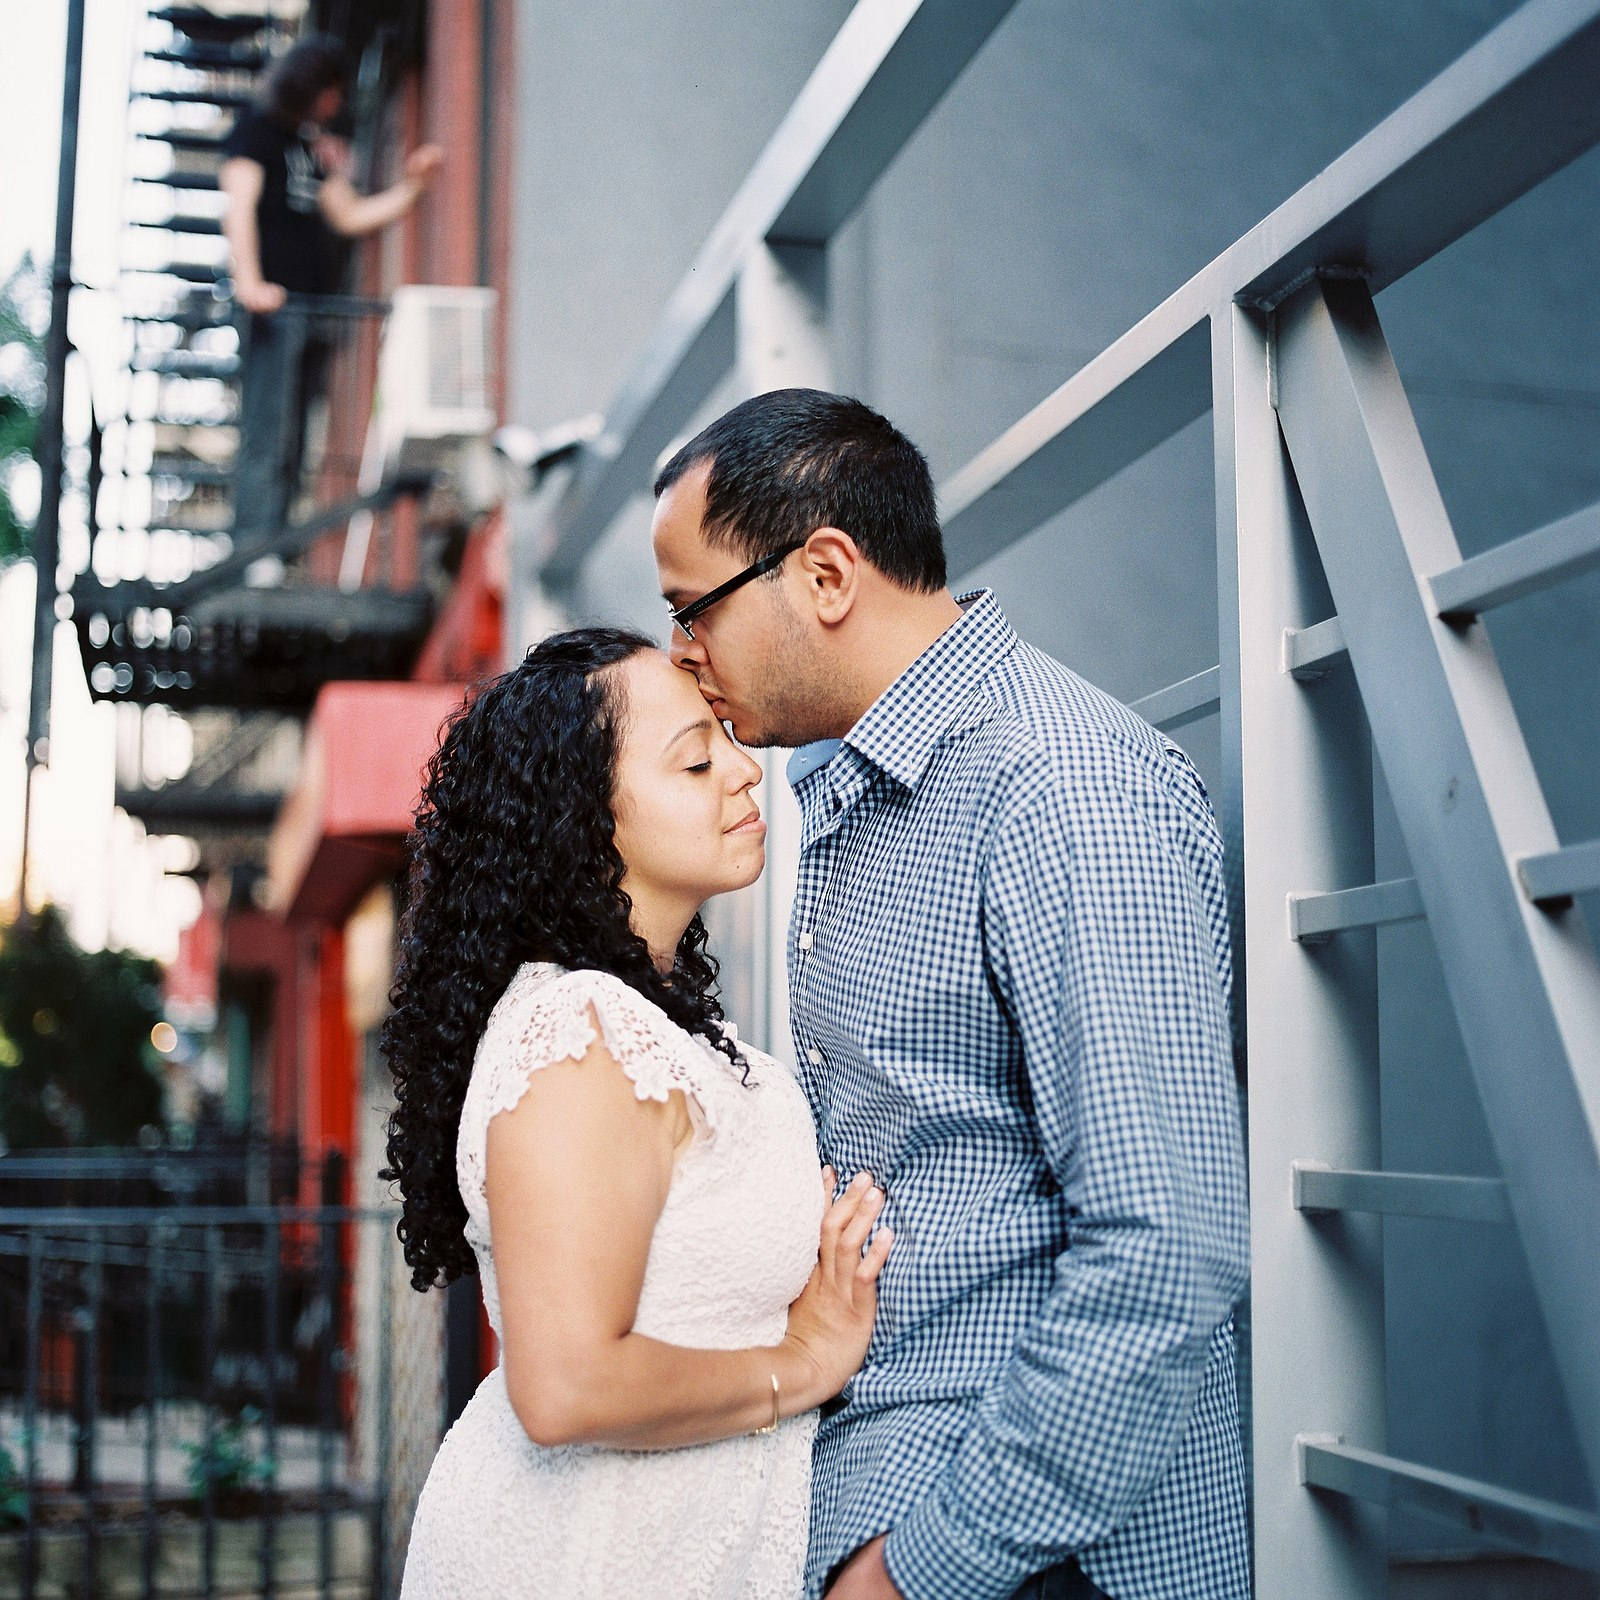 engaged couple with groom kissing bride's forehead